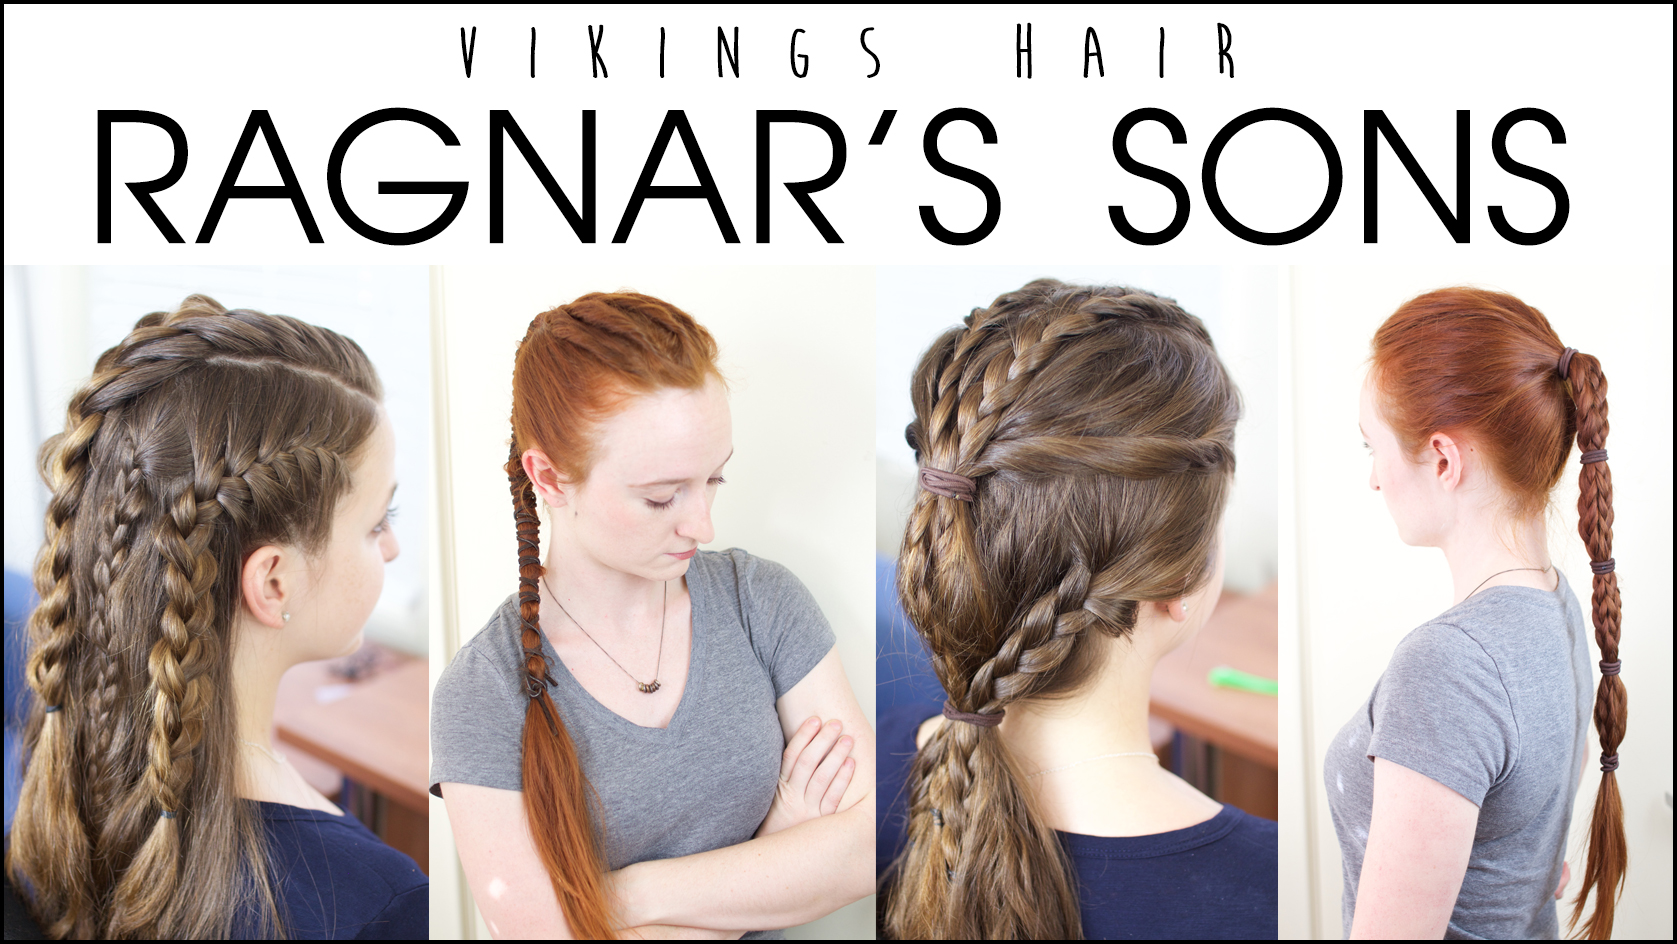 Silvousplaits Hairstyling Vikings Hairstyles Worn By Ragnars Sons